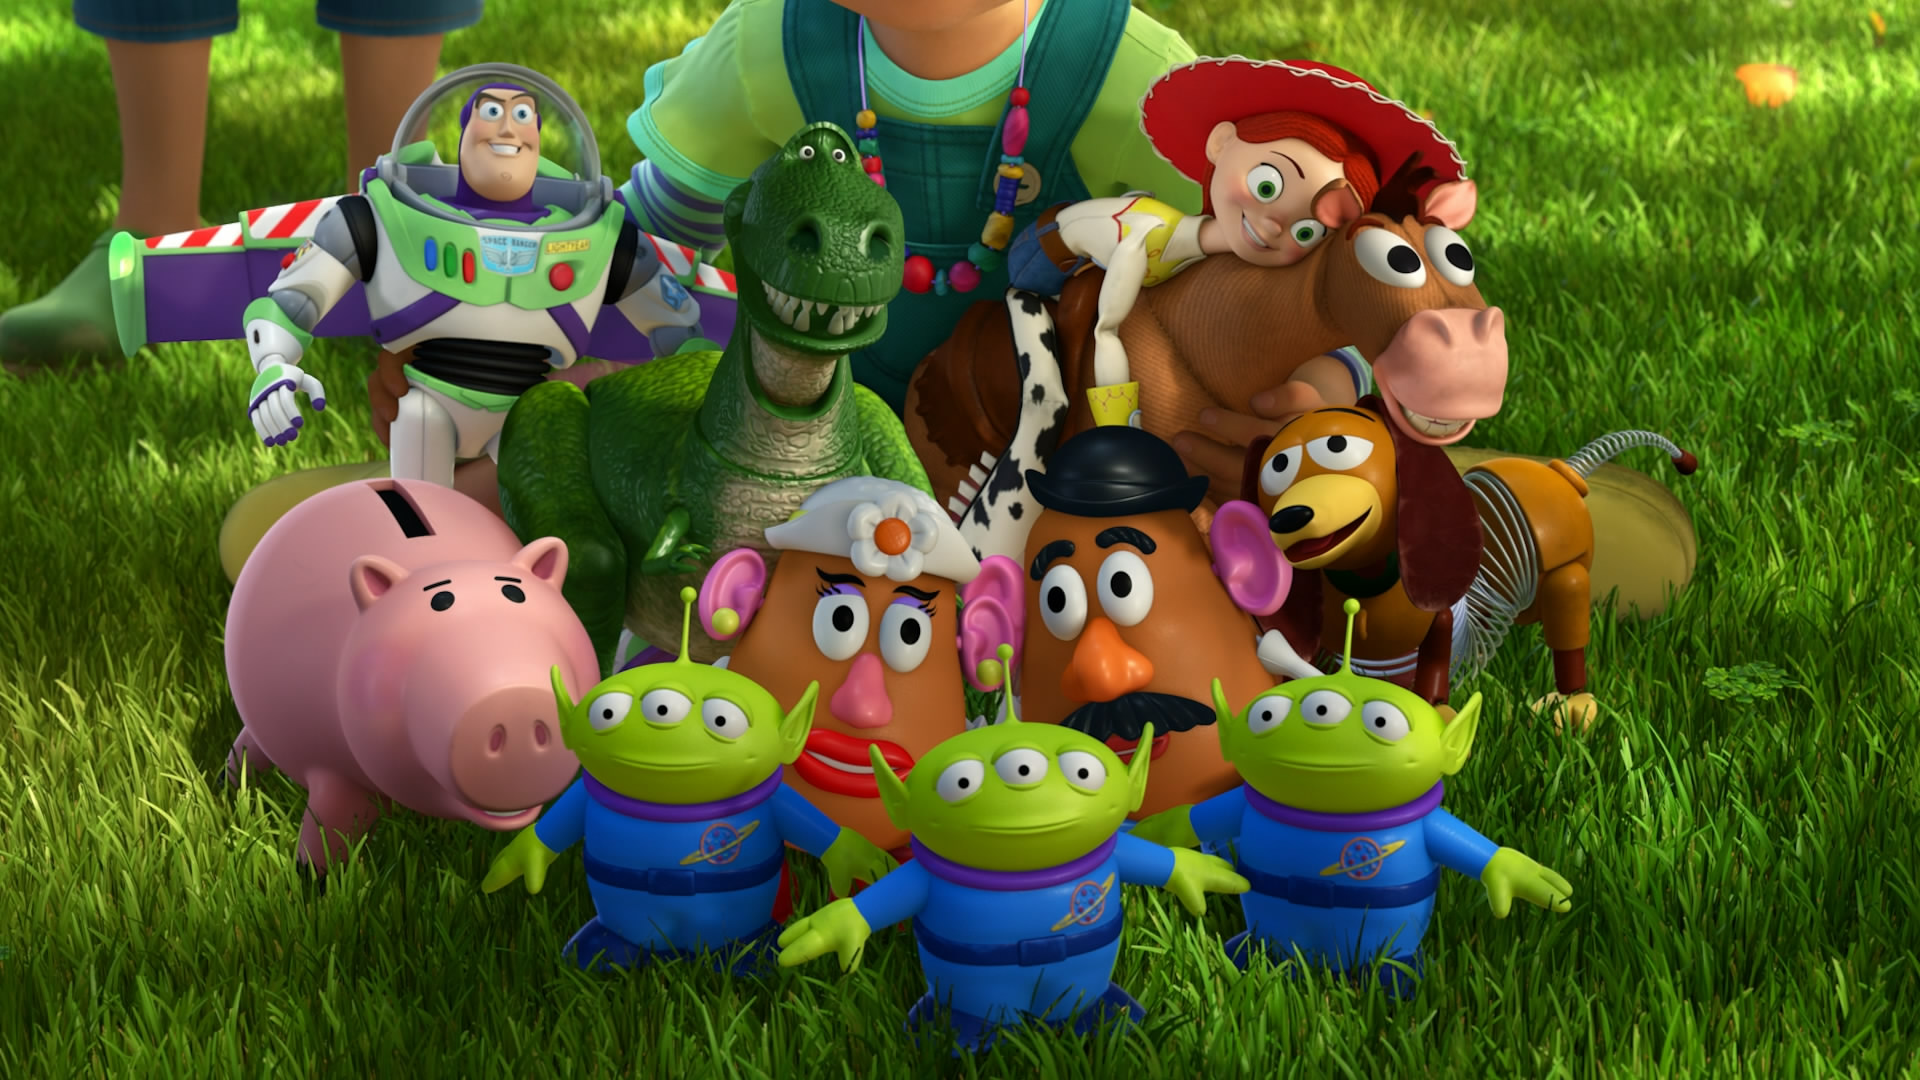 Toy Story Wallpapers High Quality | Download Free